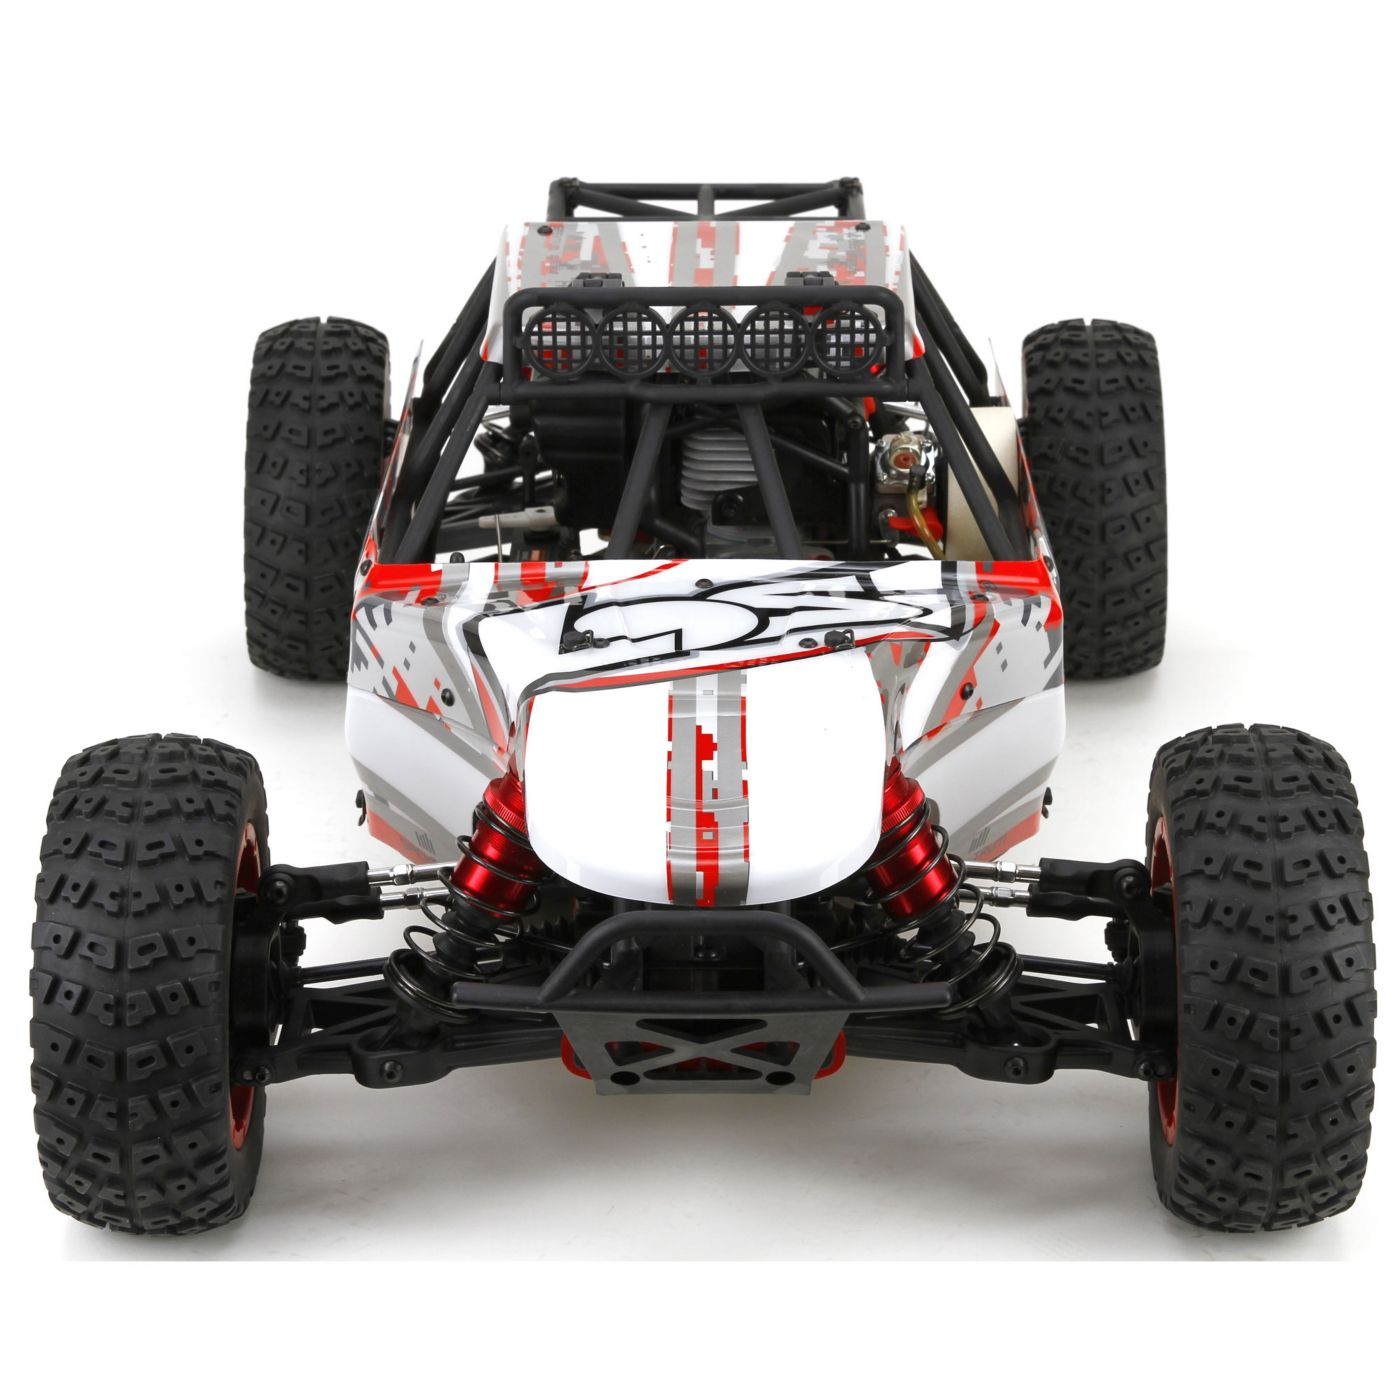 Багги 1/5 4x4 - Desert Buggy XL:1/5th 4WD RTR LOS05001